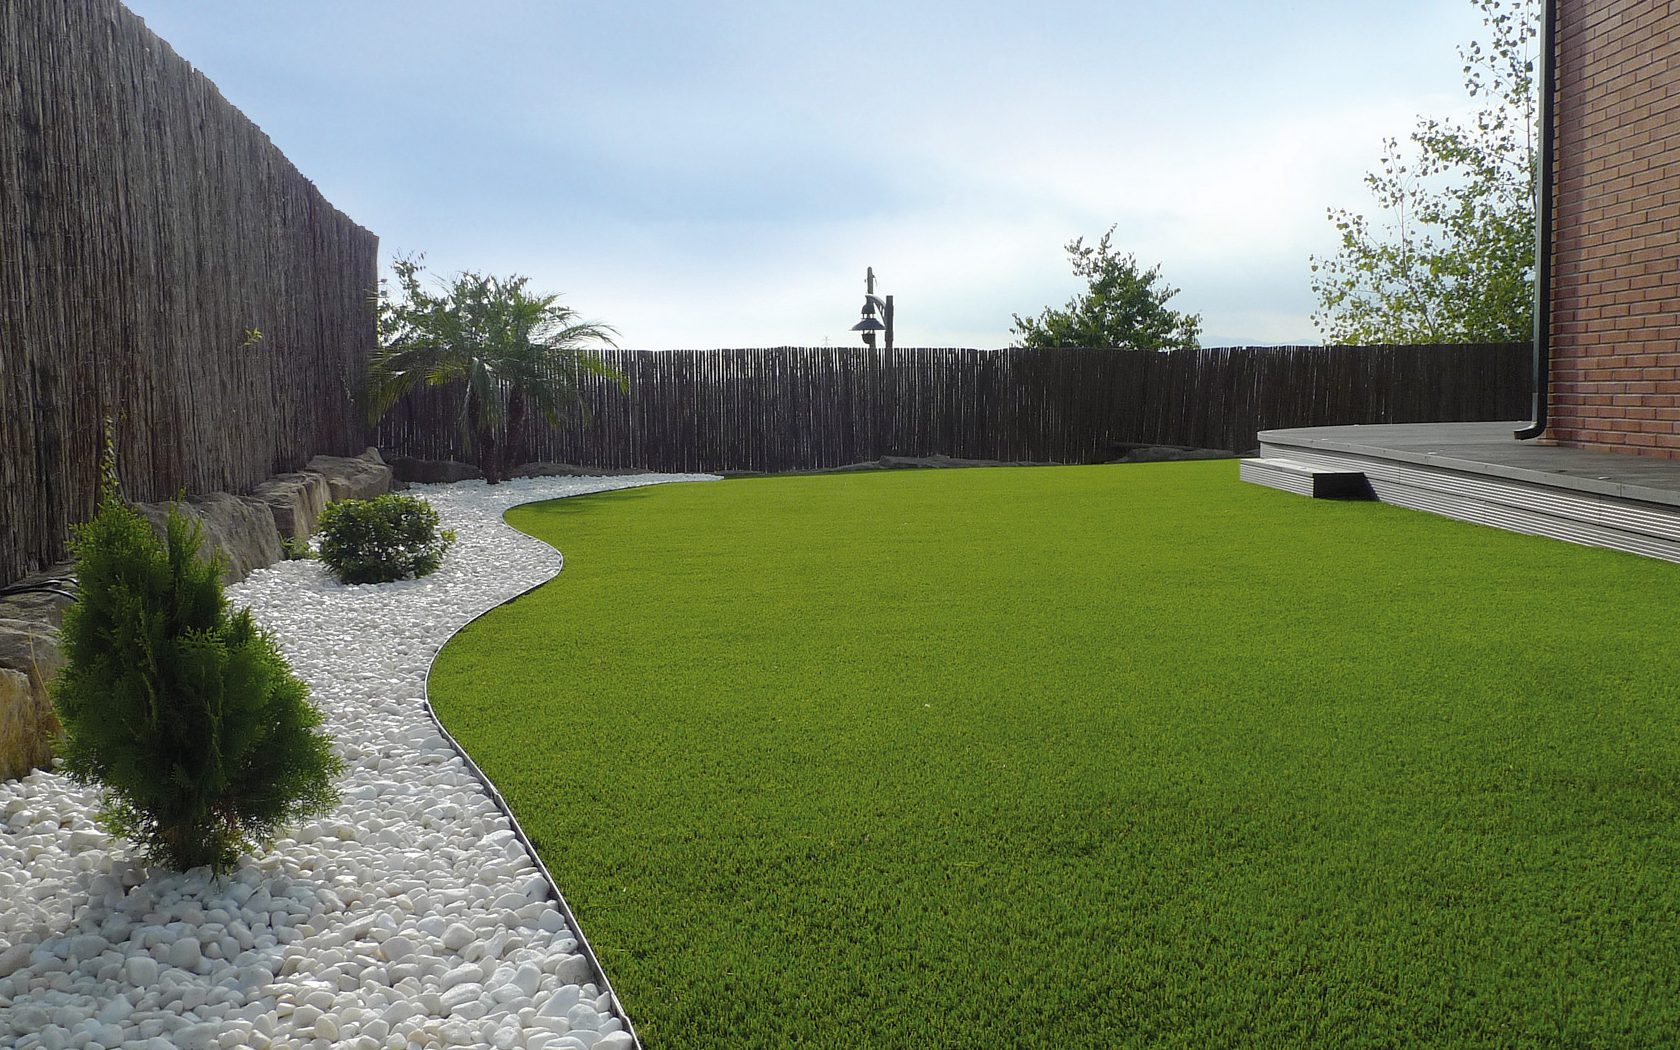 Speedgrass jard n terraza cesped artificial mobiliario - Terrazas con cesped artificial ...